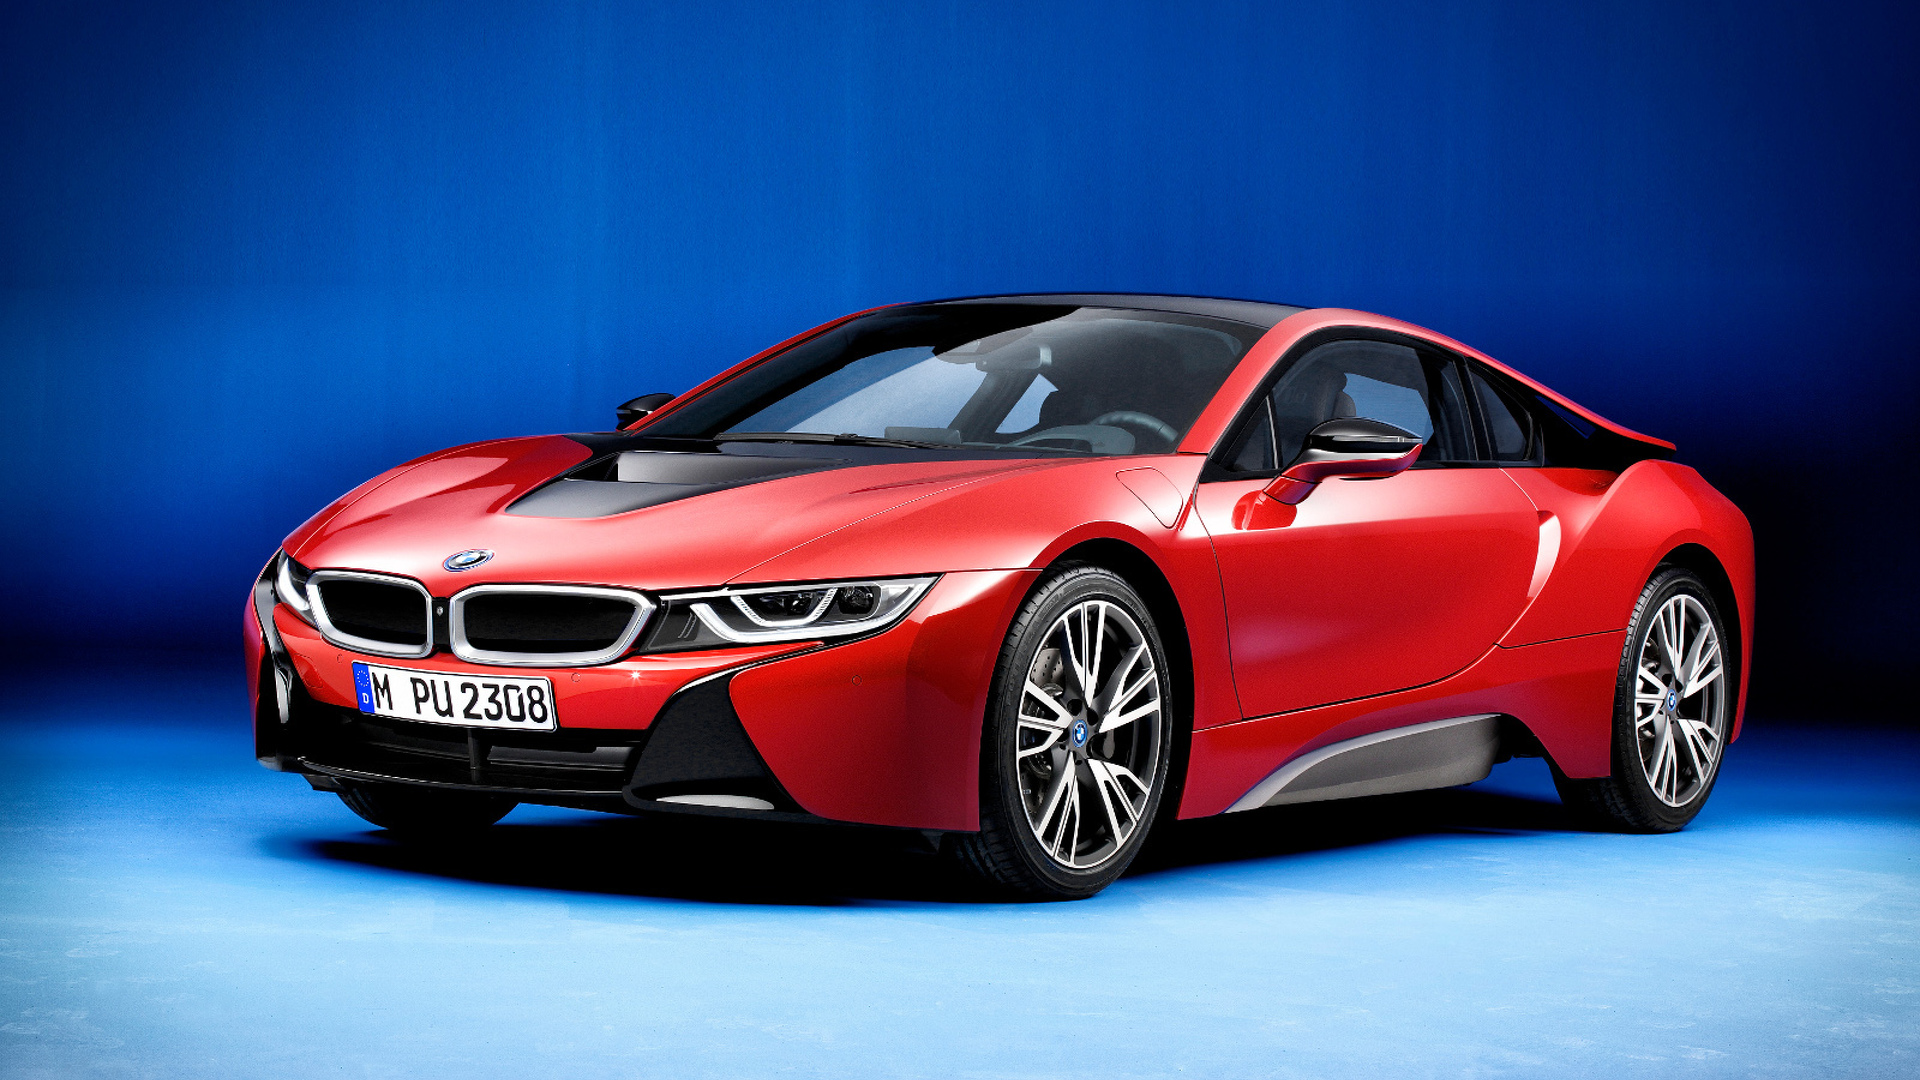 Bmw I8 Protonic Red Edition Announced For Geneva